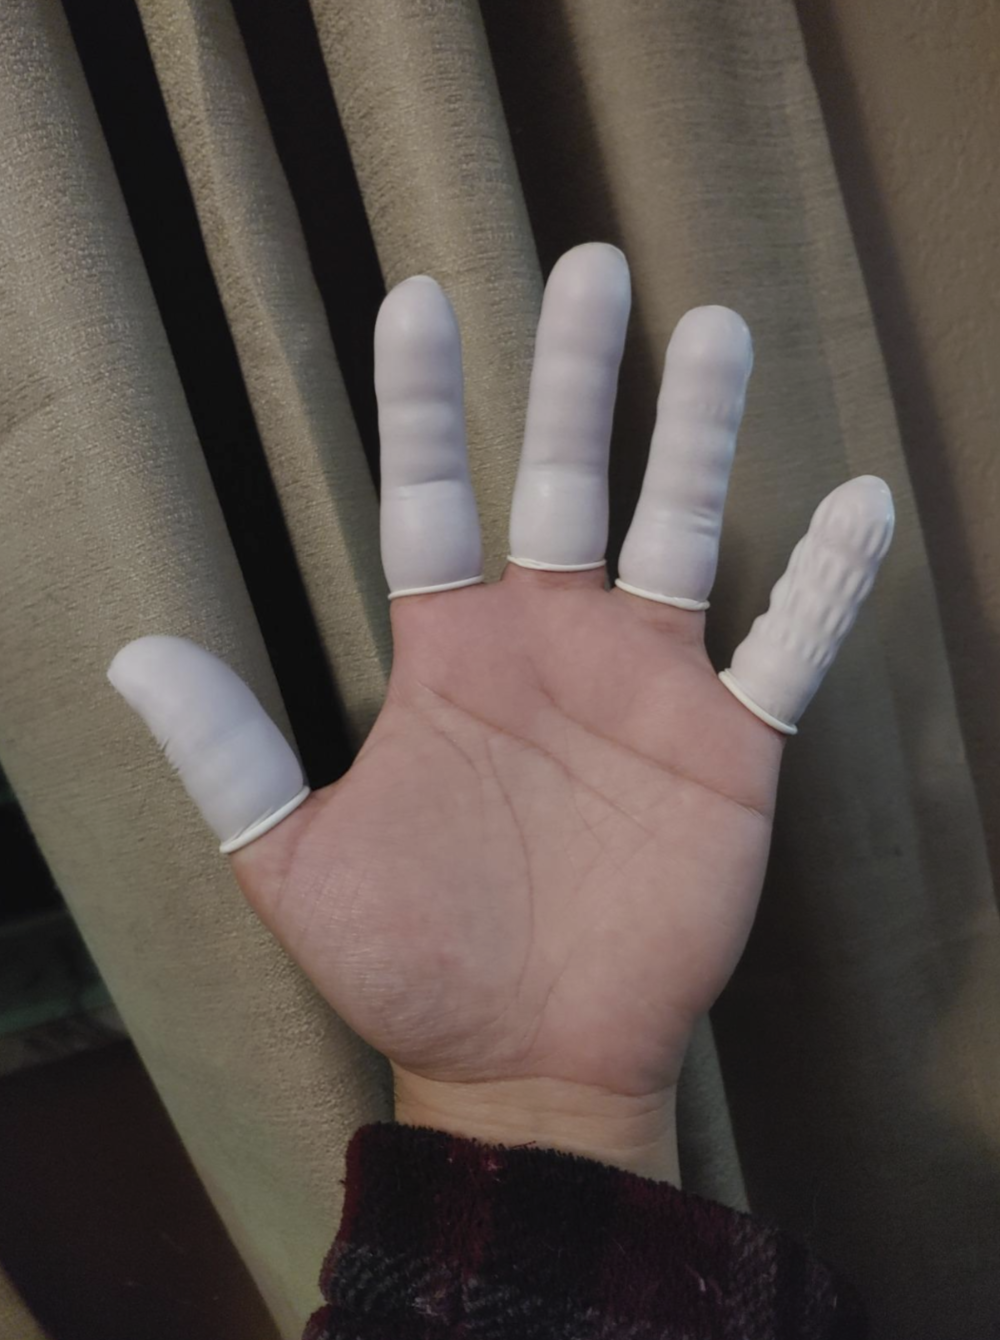 A reviewer's hand wearing individual latex covers for each finger